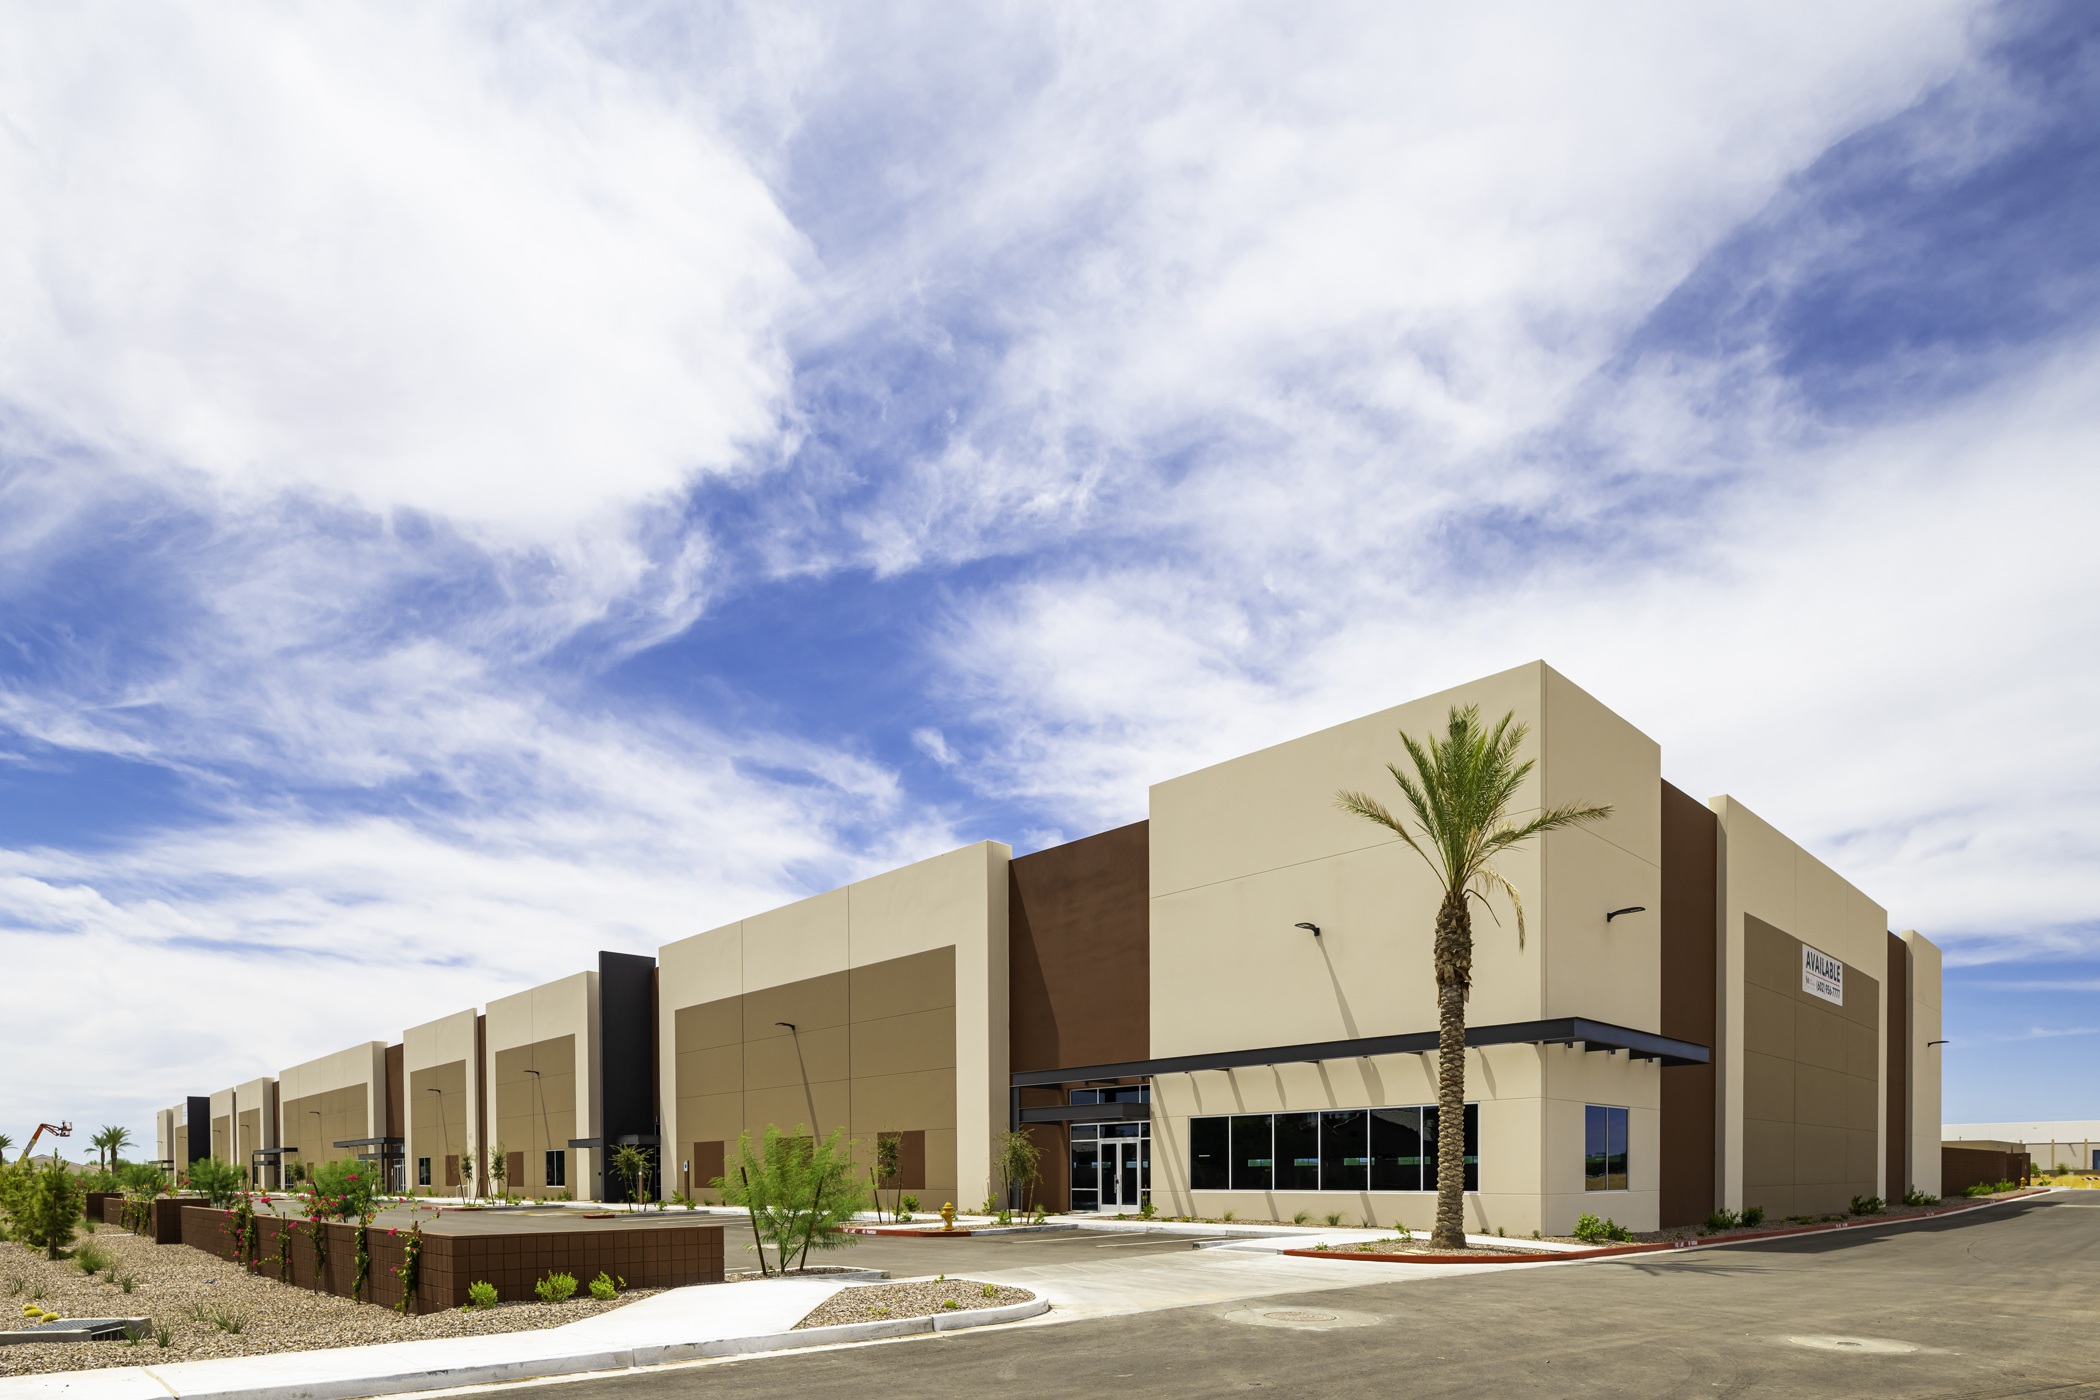 GPMI Co. will move its manufacturing to Gilbert, Arizona. (CoStar)